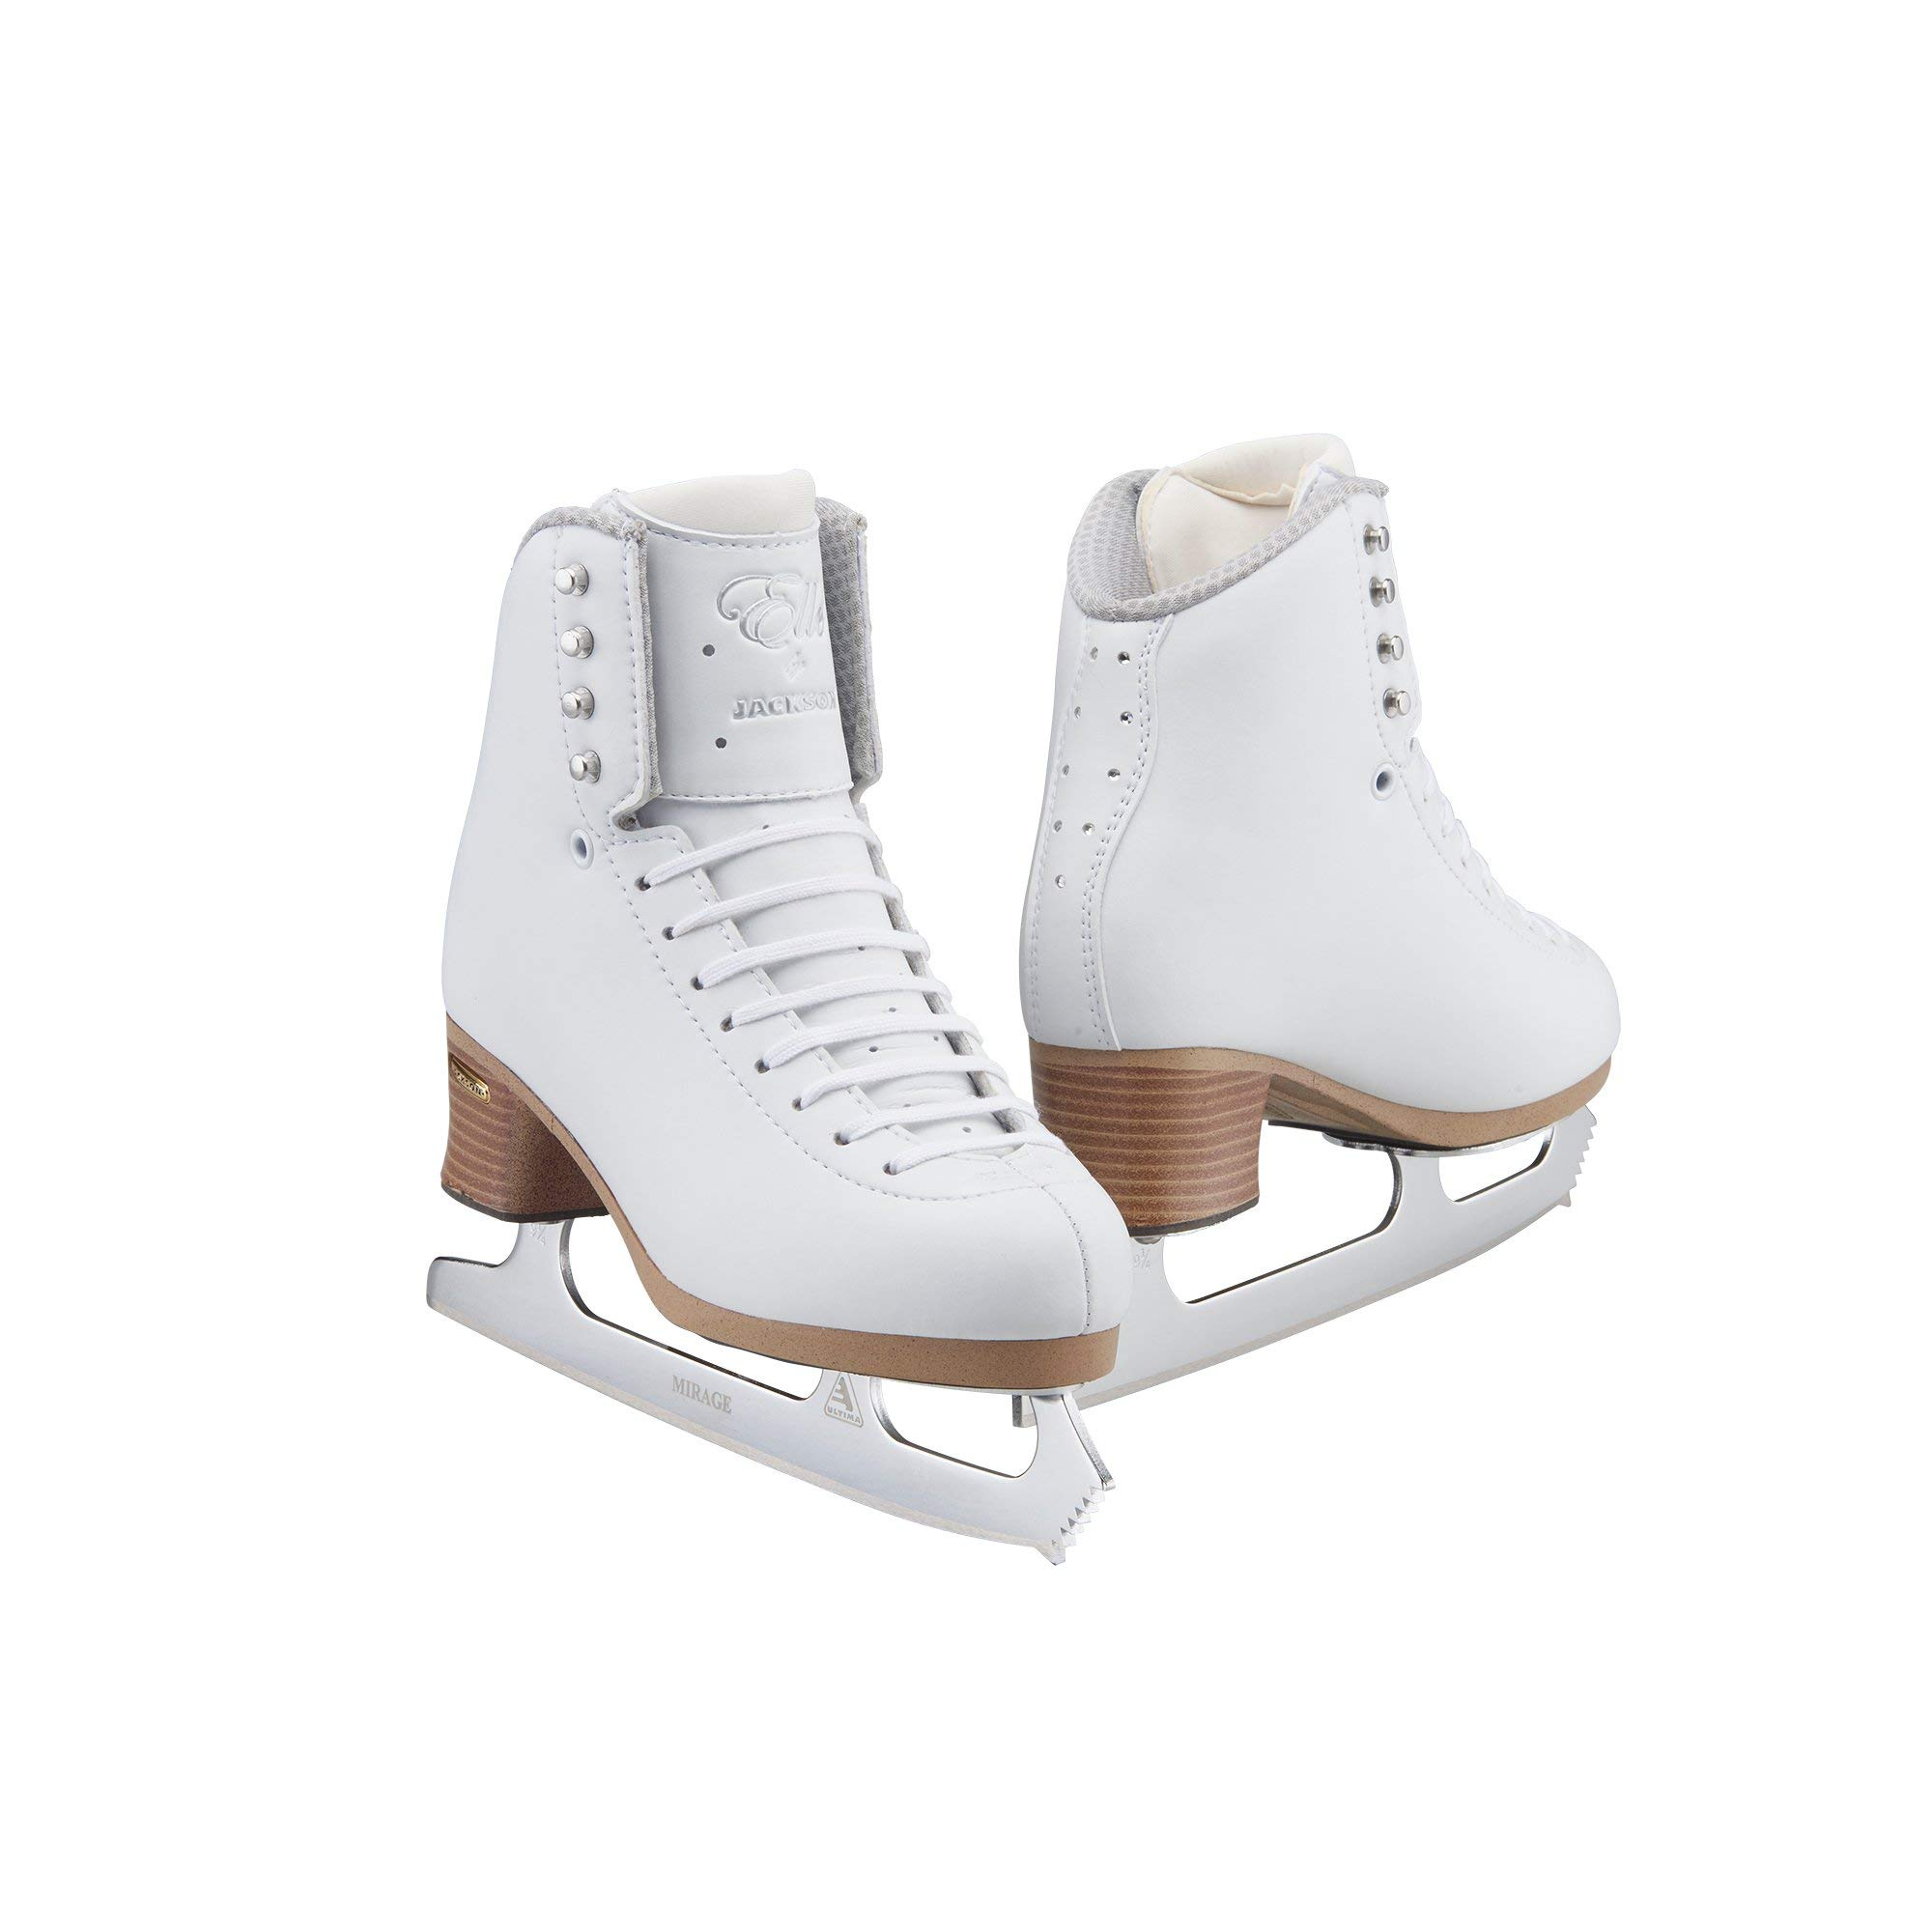 Jackson Elle Womens/Girls Figure Skate